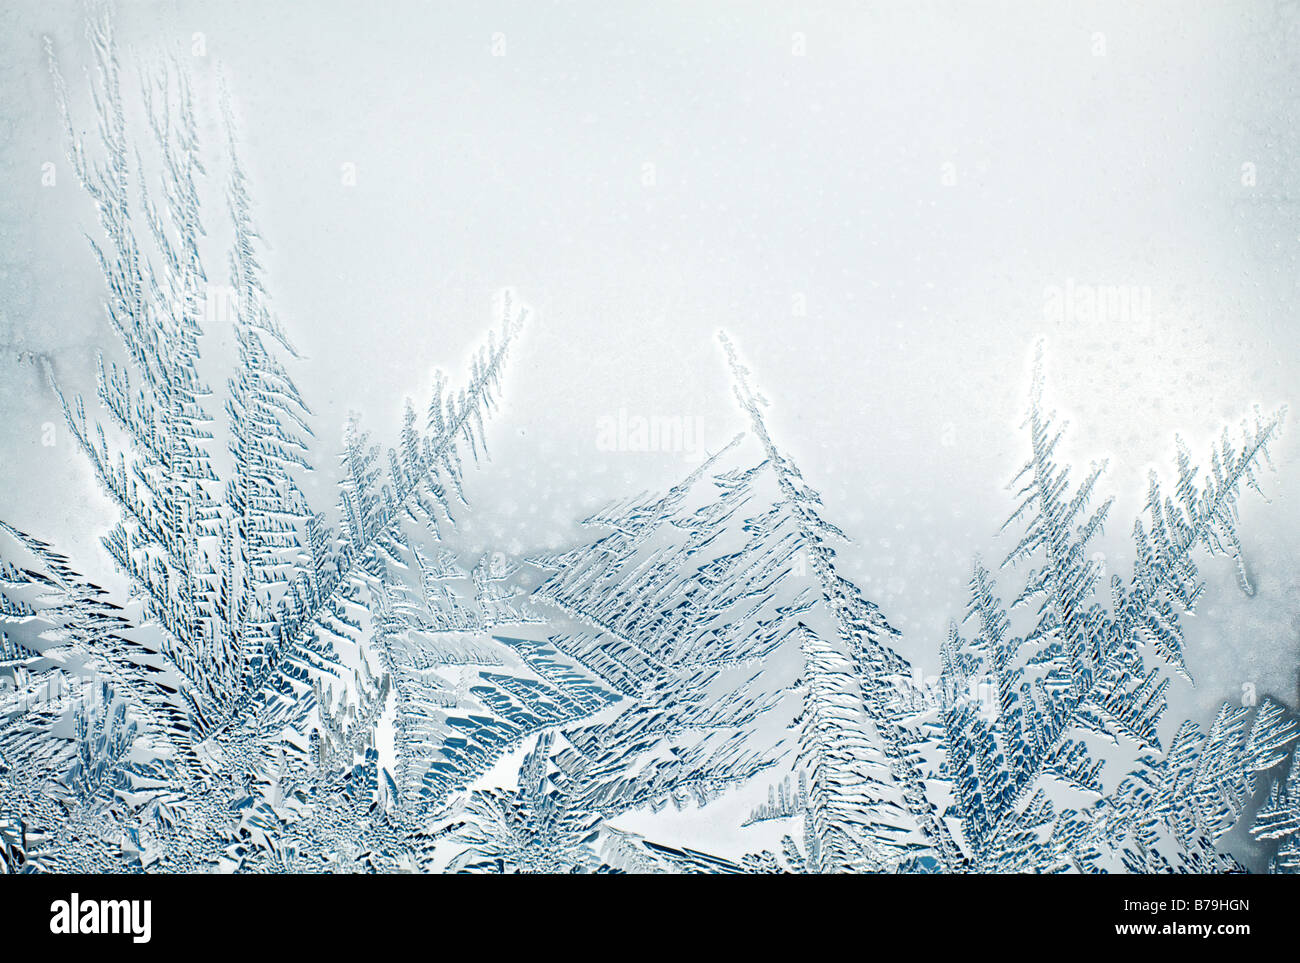 Ice crystals in window - Stock Image